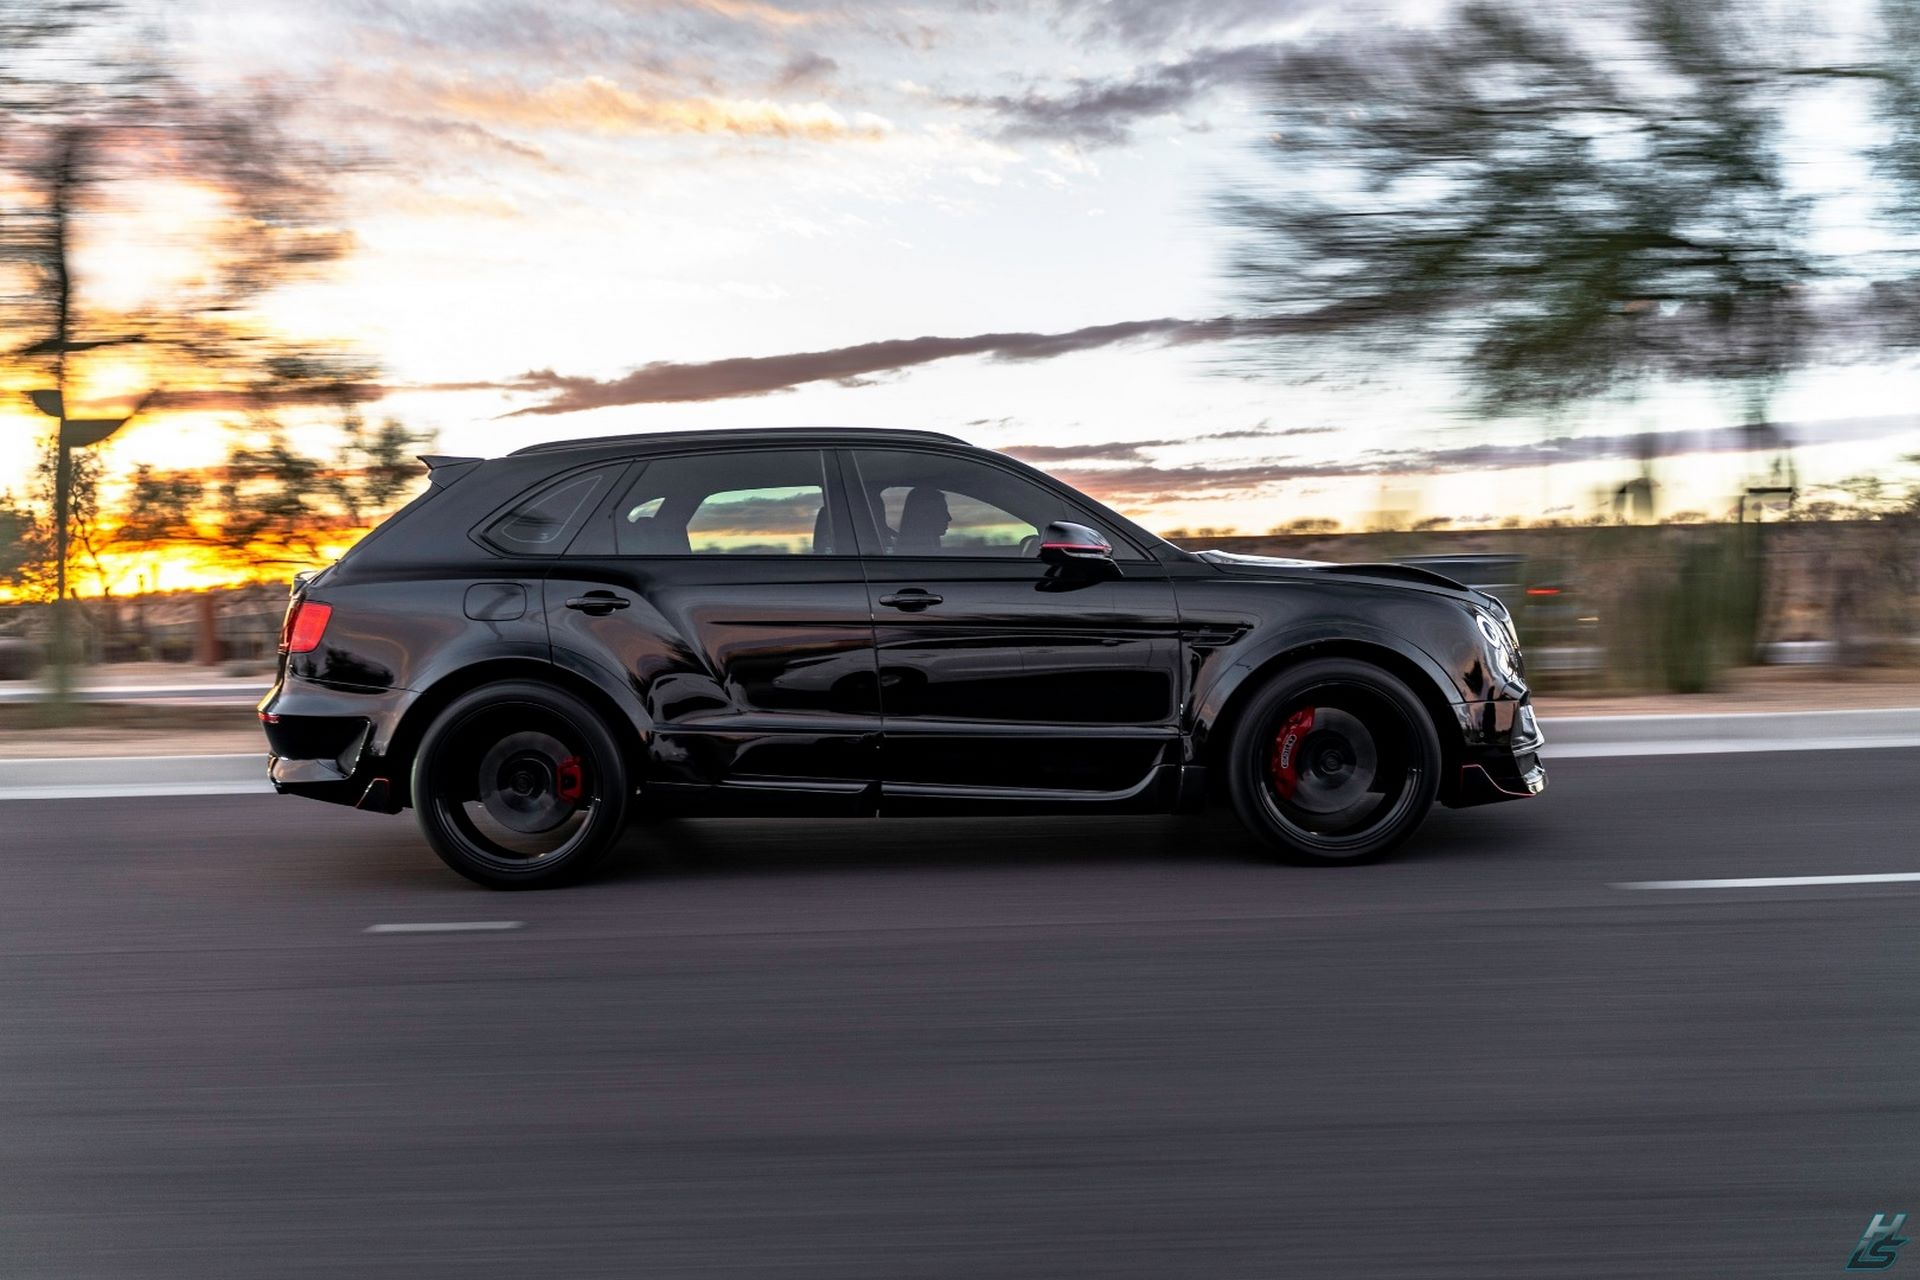 Bentley-Bentayga-by-Creative-Bespoke-51